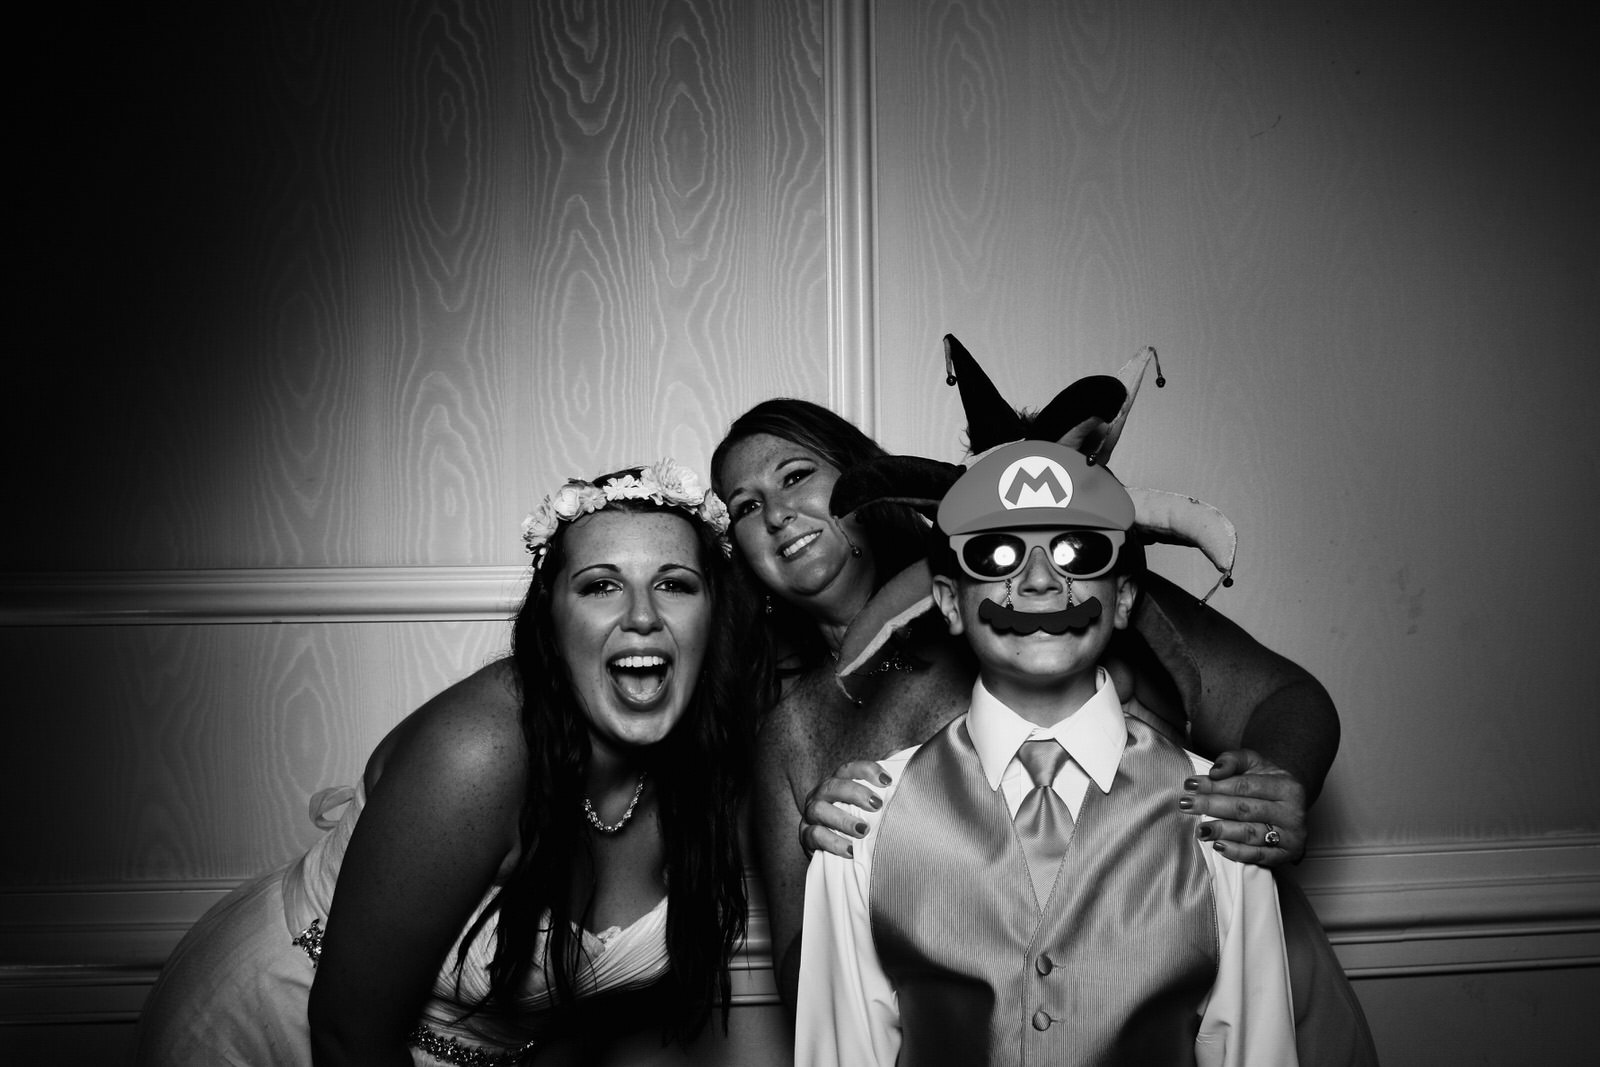 Ashley-Tyrone-Wedding-Photo-Booth-Presidential_Norristown-Wedding-35.jpg